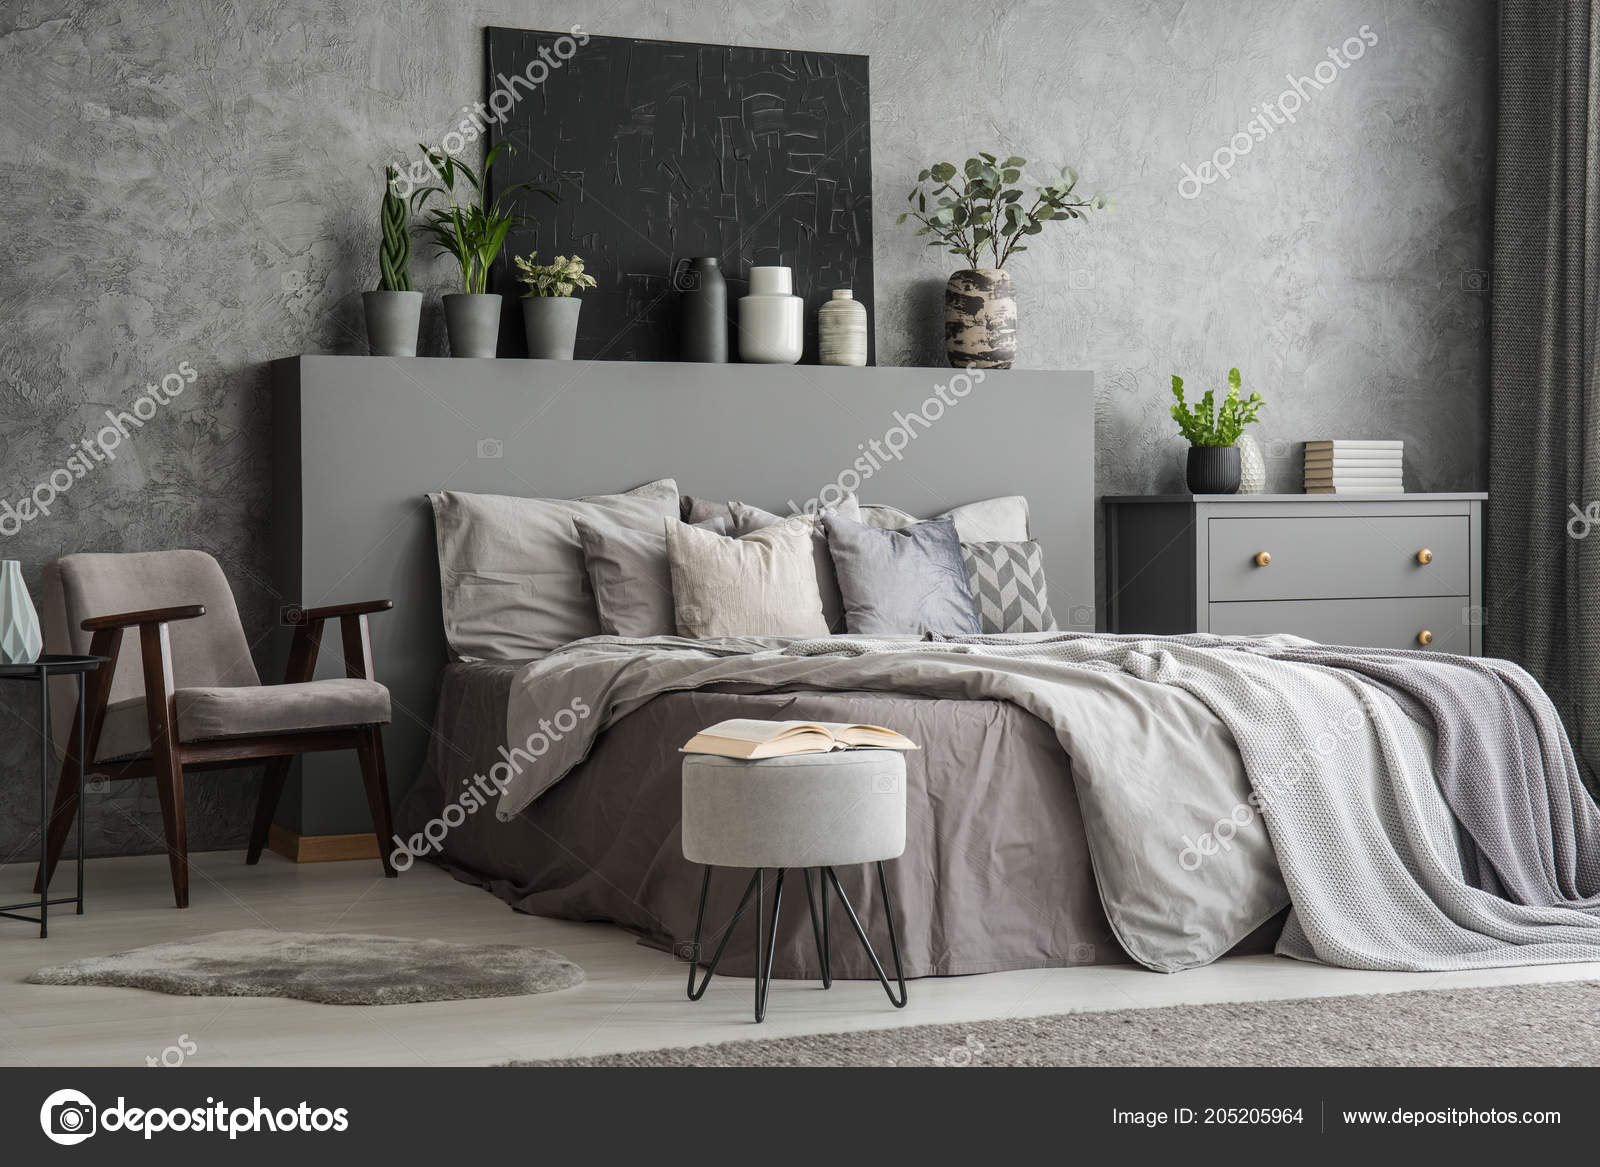 Outstanding Stylish Bedroom Interior Bed Blankets Pillows Armchair Pabps2019 Chair Design Images Pabps2019Com